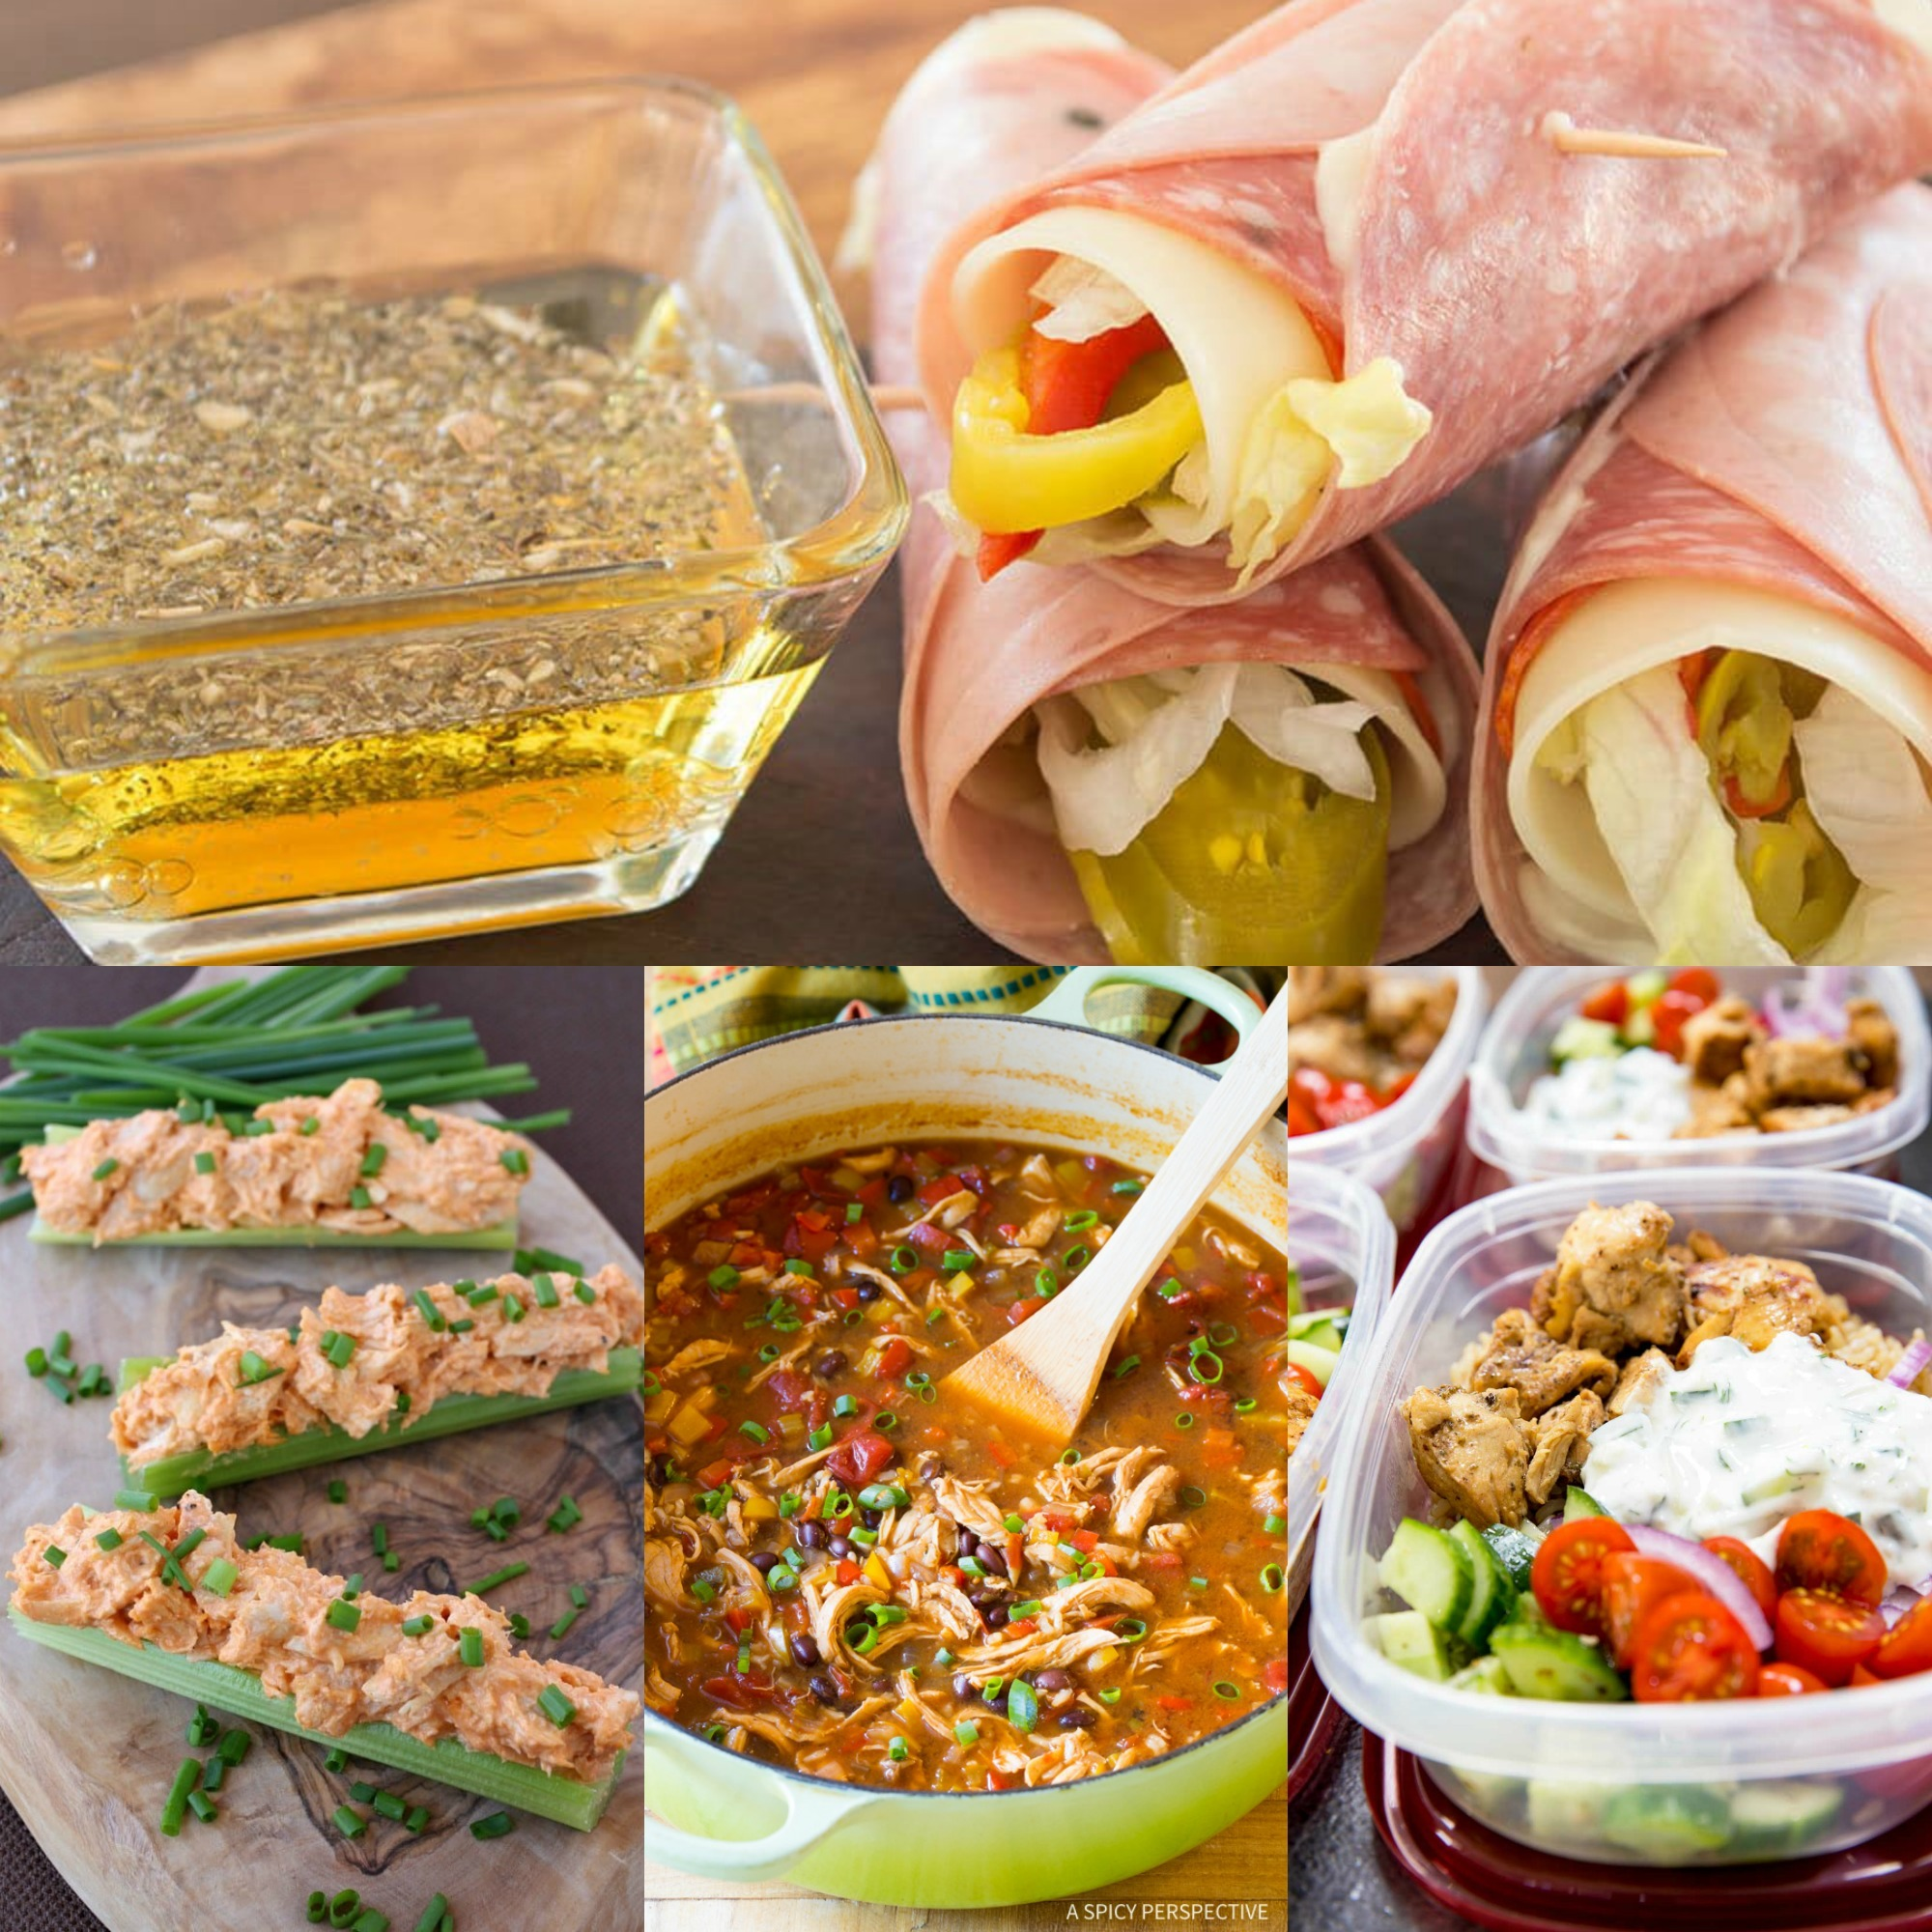 A Week of Keto Recipes That Taste Amazing And Help You ...